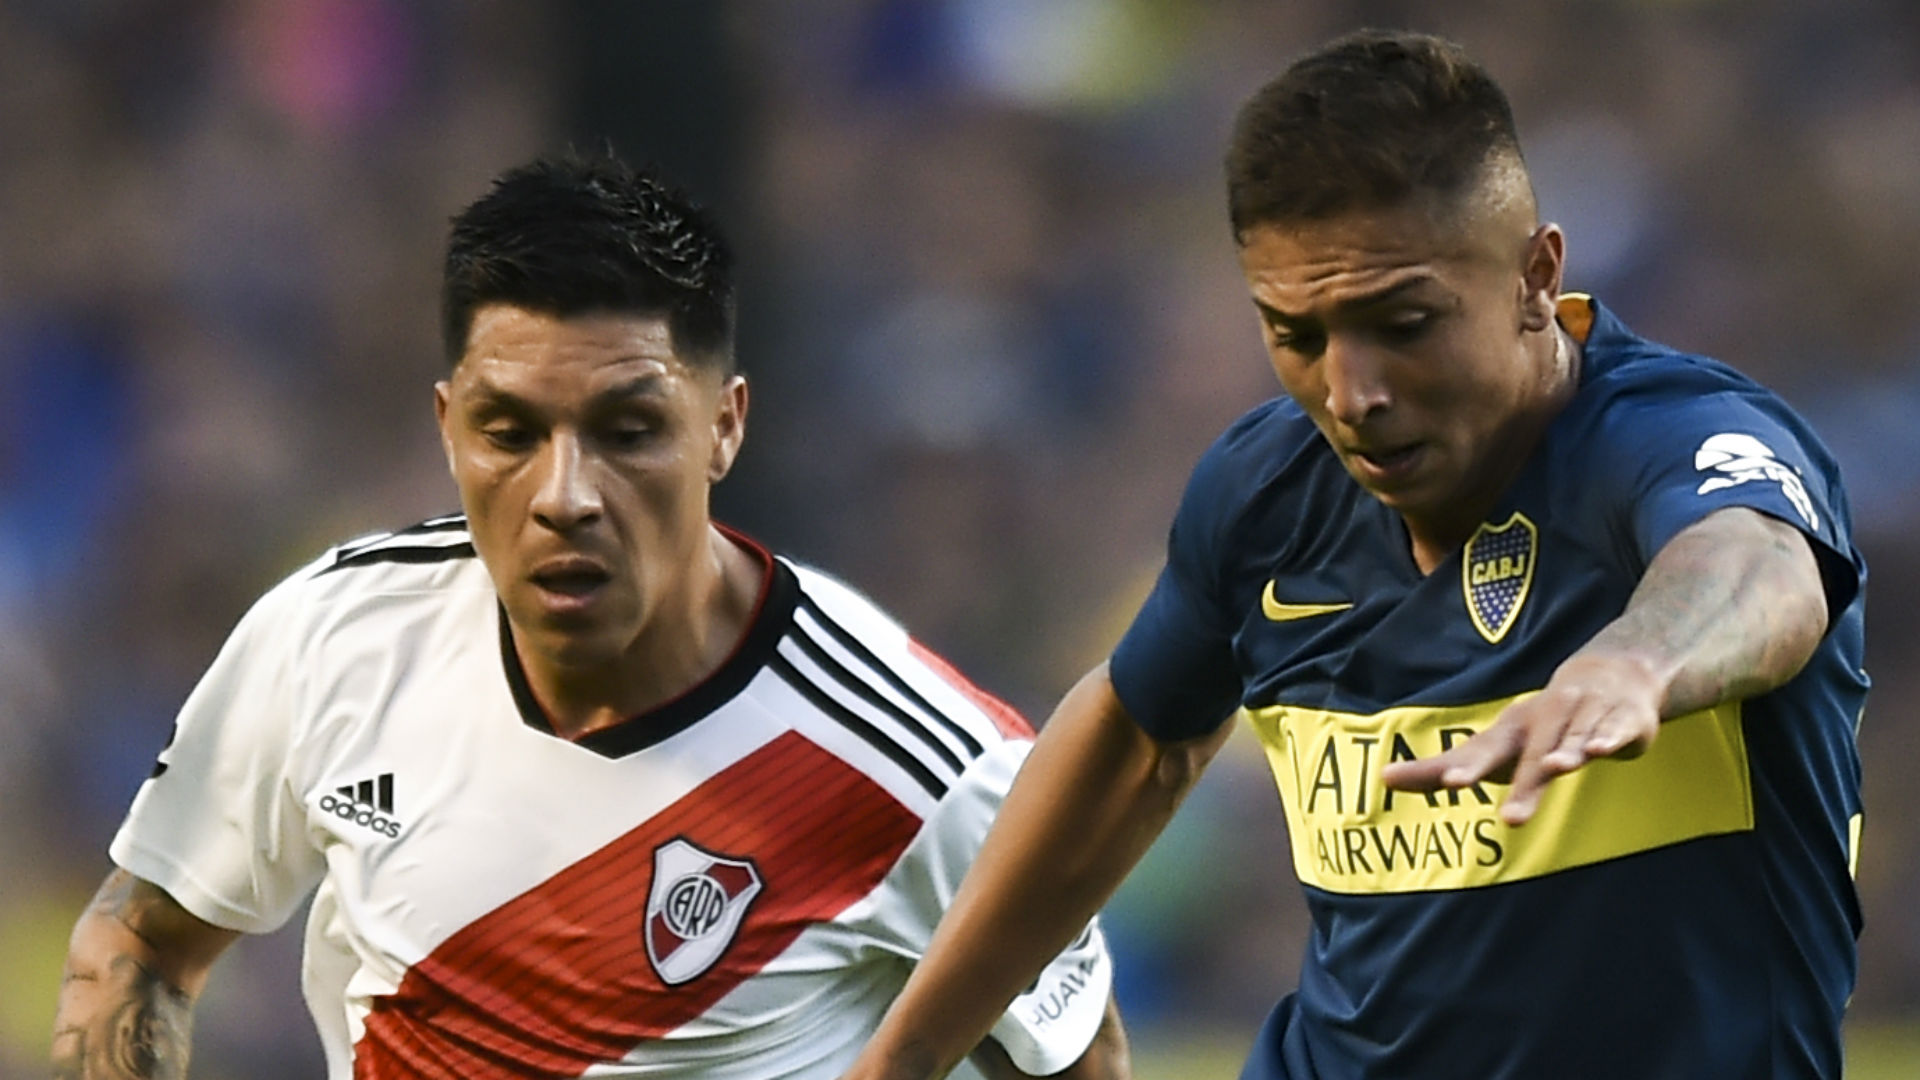 Boca Juniors: Copa Libertadores 2018 Final: How To Watch & Stream River